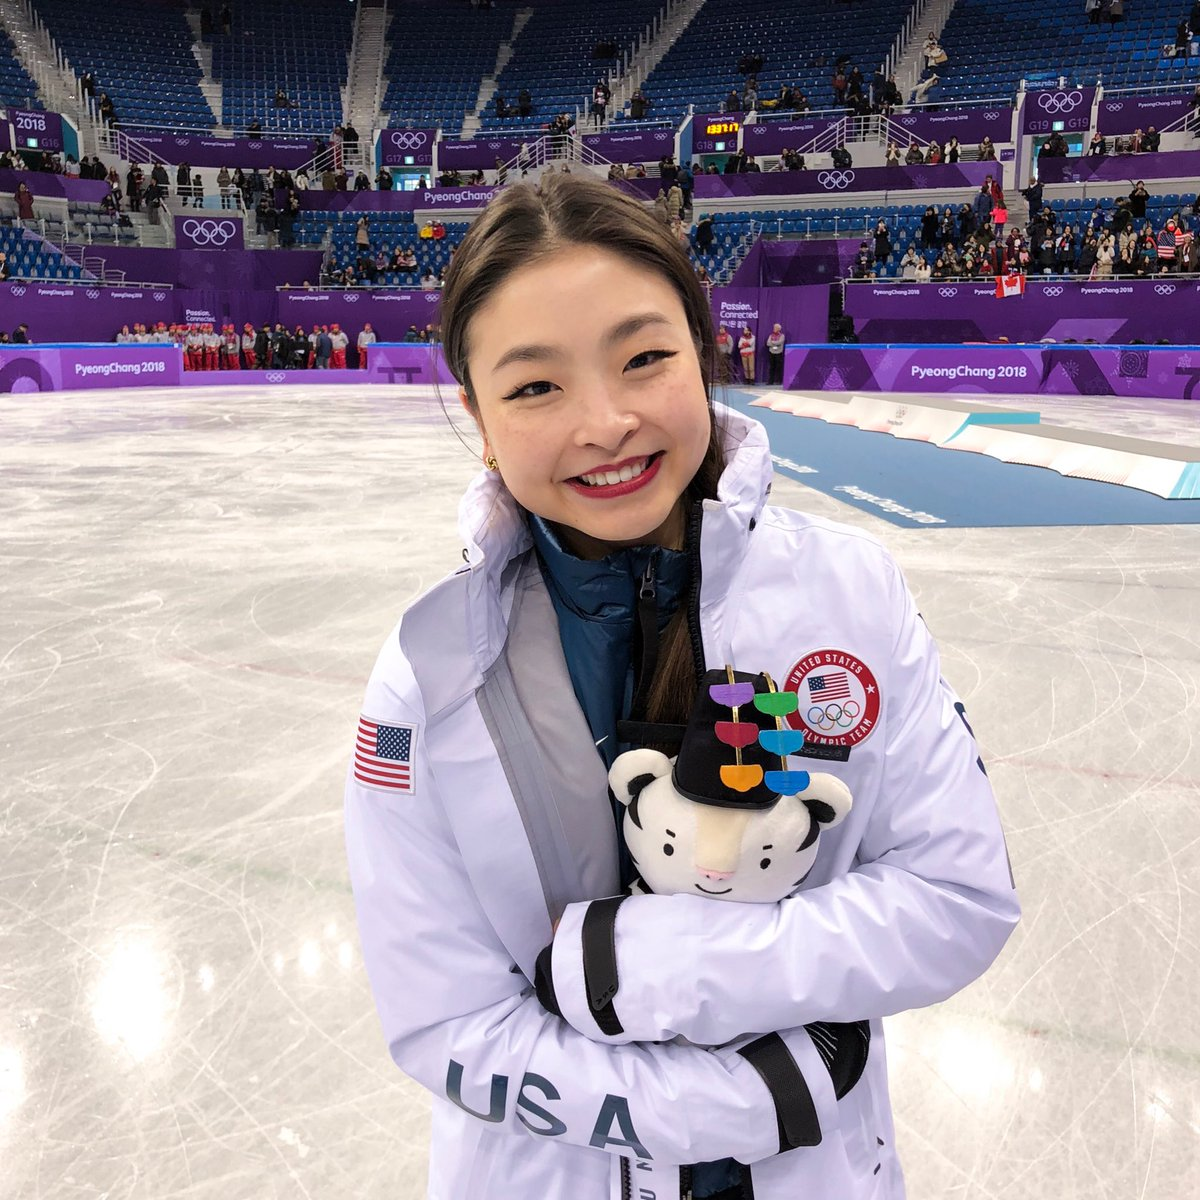 .@MaiaShibutani is... Brave, intelligent, and compassionate. Strong, courageous, innovative, and inspiring. She is smart. She is funny. She is kind. She is unstoppable, and she is my sister... Maia deserves to have the same rights and opportunities as me. #IWD2018 #HeForShe